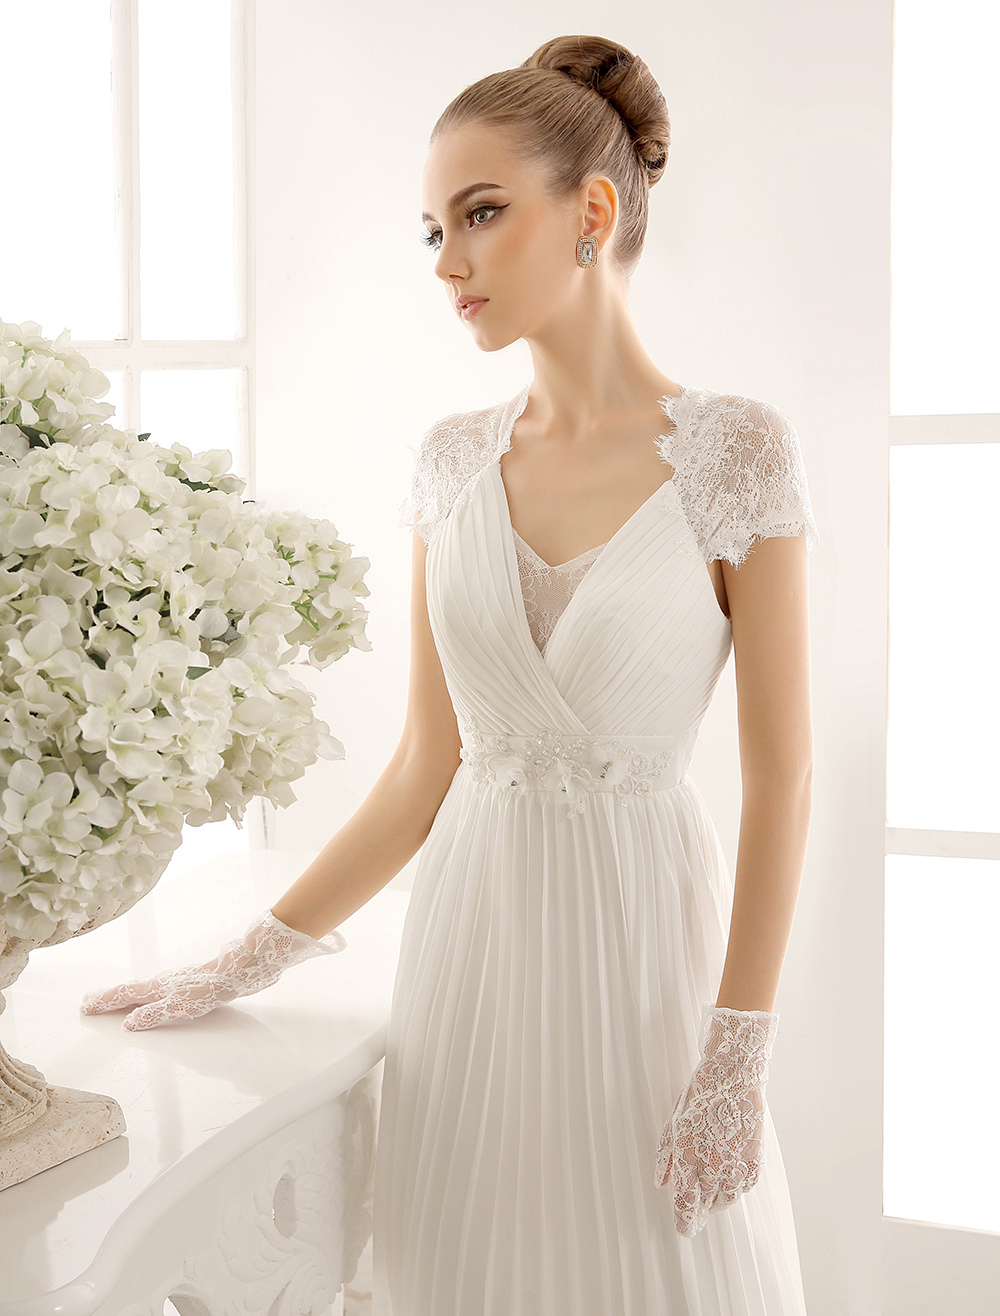 V-Neck Wedding Dress With Lace In Floor Length Milanoo